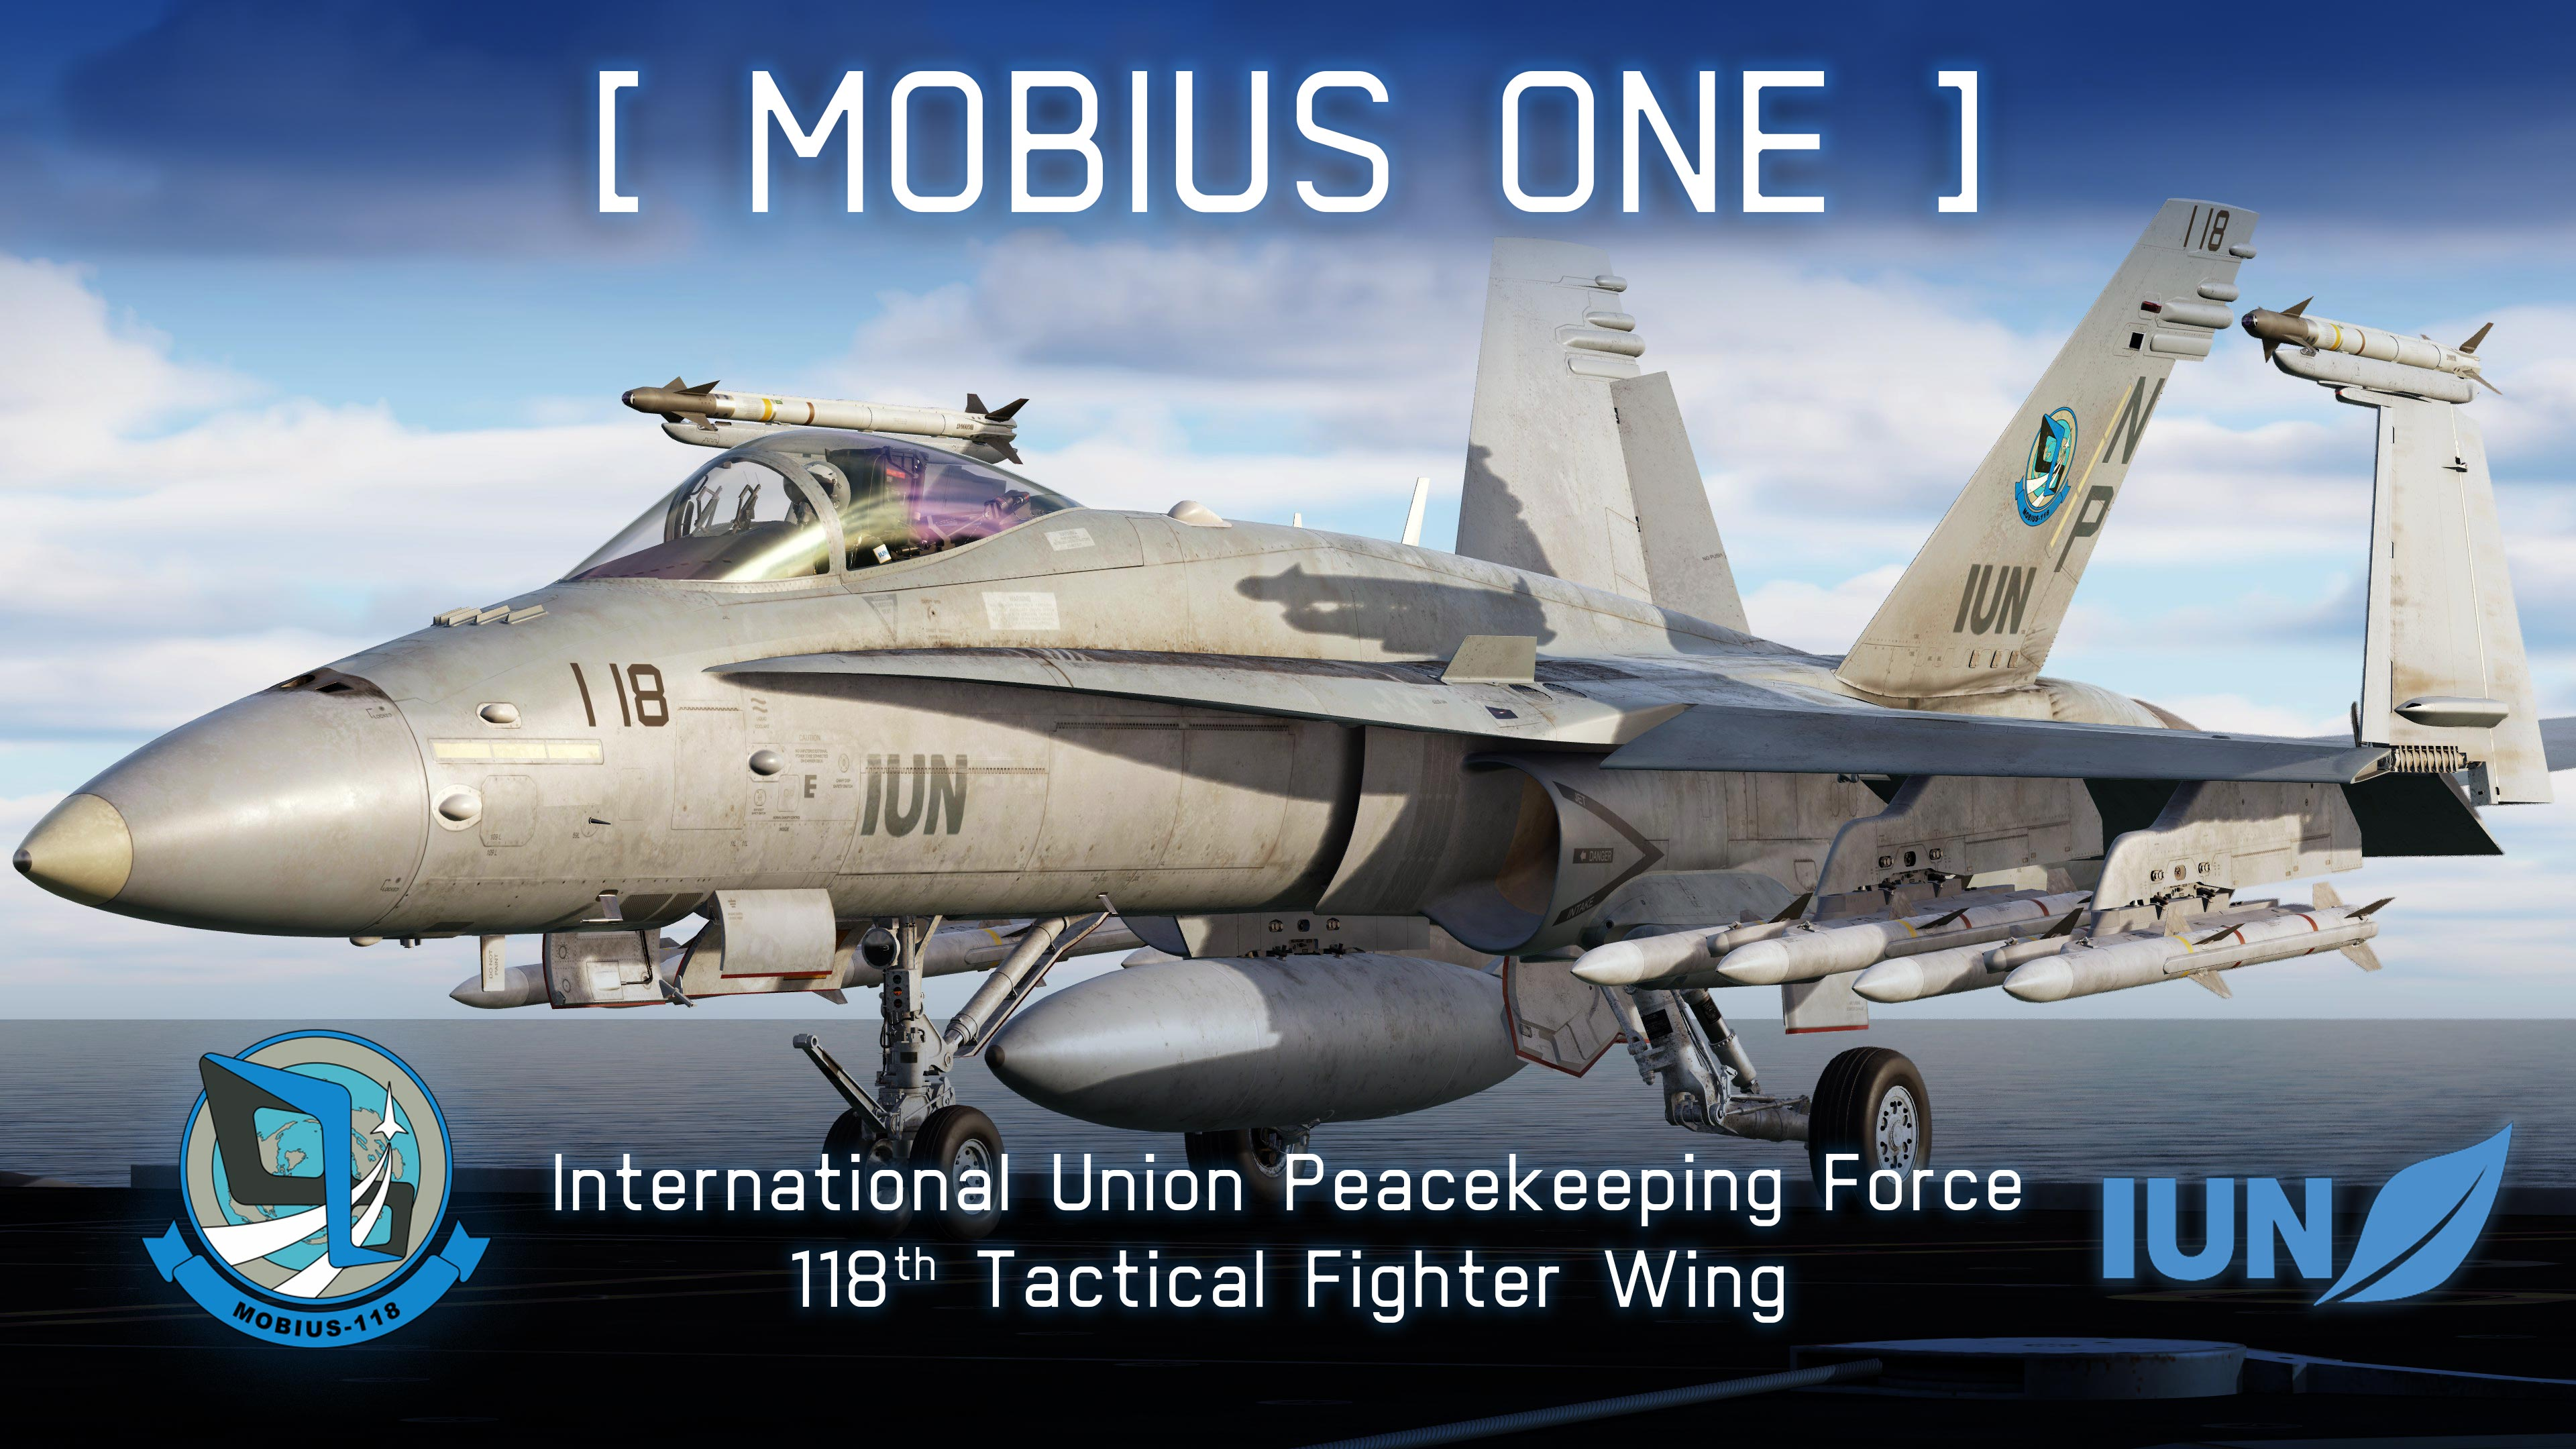 """Mobius 1"" – F/A-18C, IUN-PKF, 118th Tactical Fighter Wing (Ace Combat 7)"